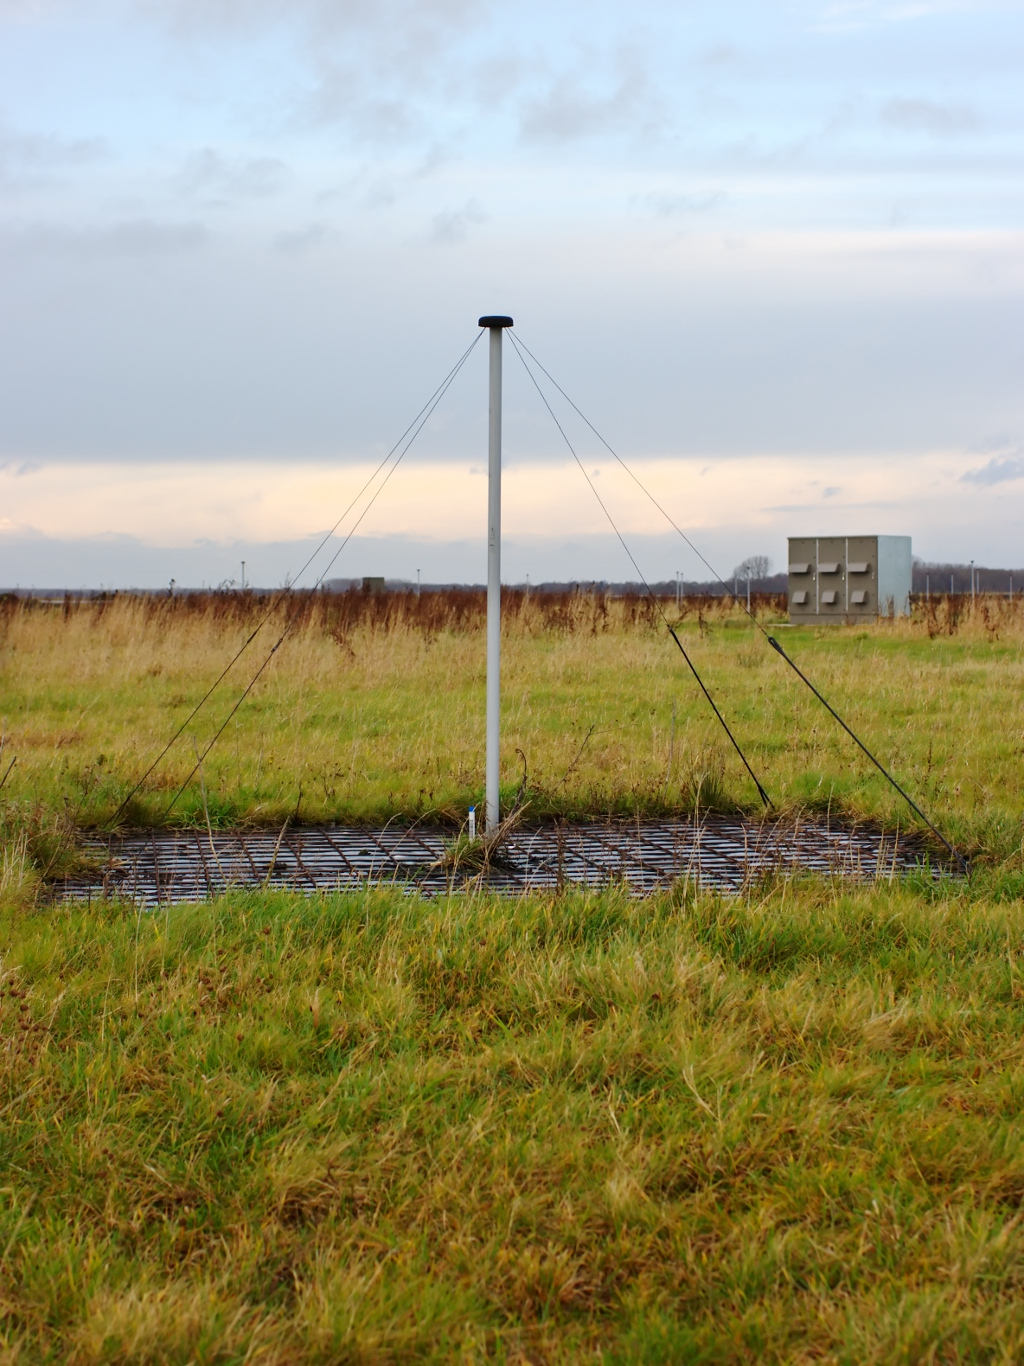 Photo showing a low-band antenna (LBA) of the Low-Frequency Array (LOFAR), an interferometric radio telescope build in Europe. In the right back of the antenna, a LOFAR cabin is visible that contains electronics. The full array consists of thousands of such antennas. Image credit: A. R. Offringa, CC BY-SA 3.0, via  Wikimedia Commons